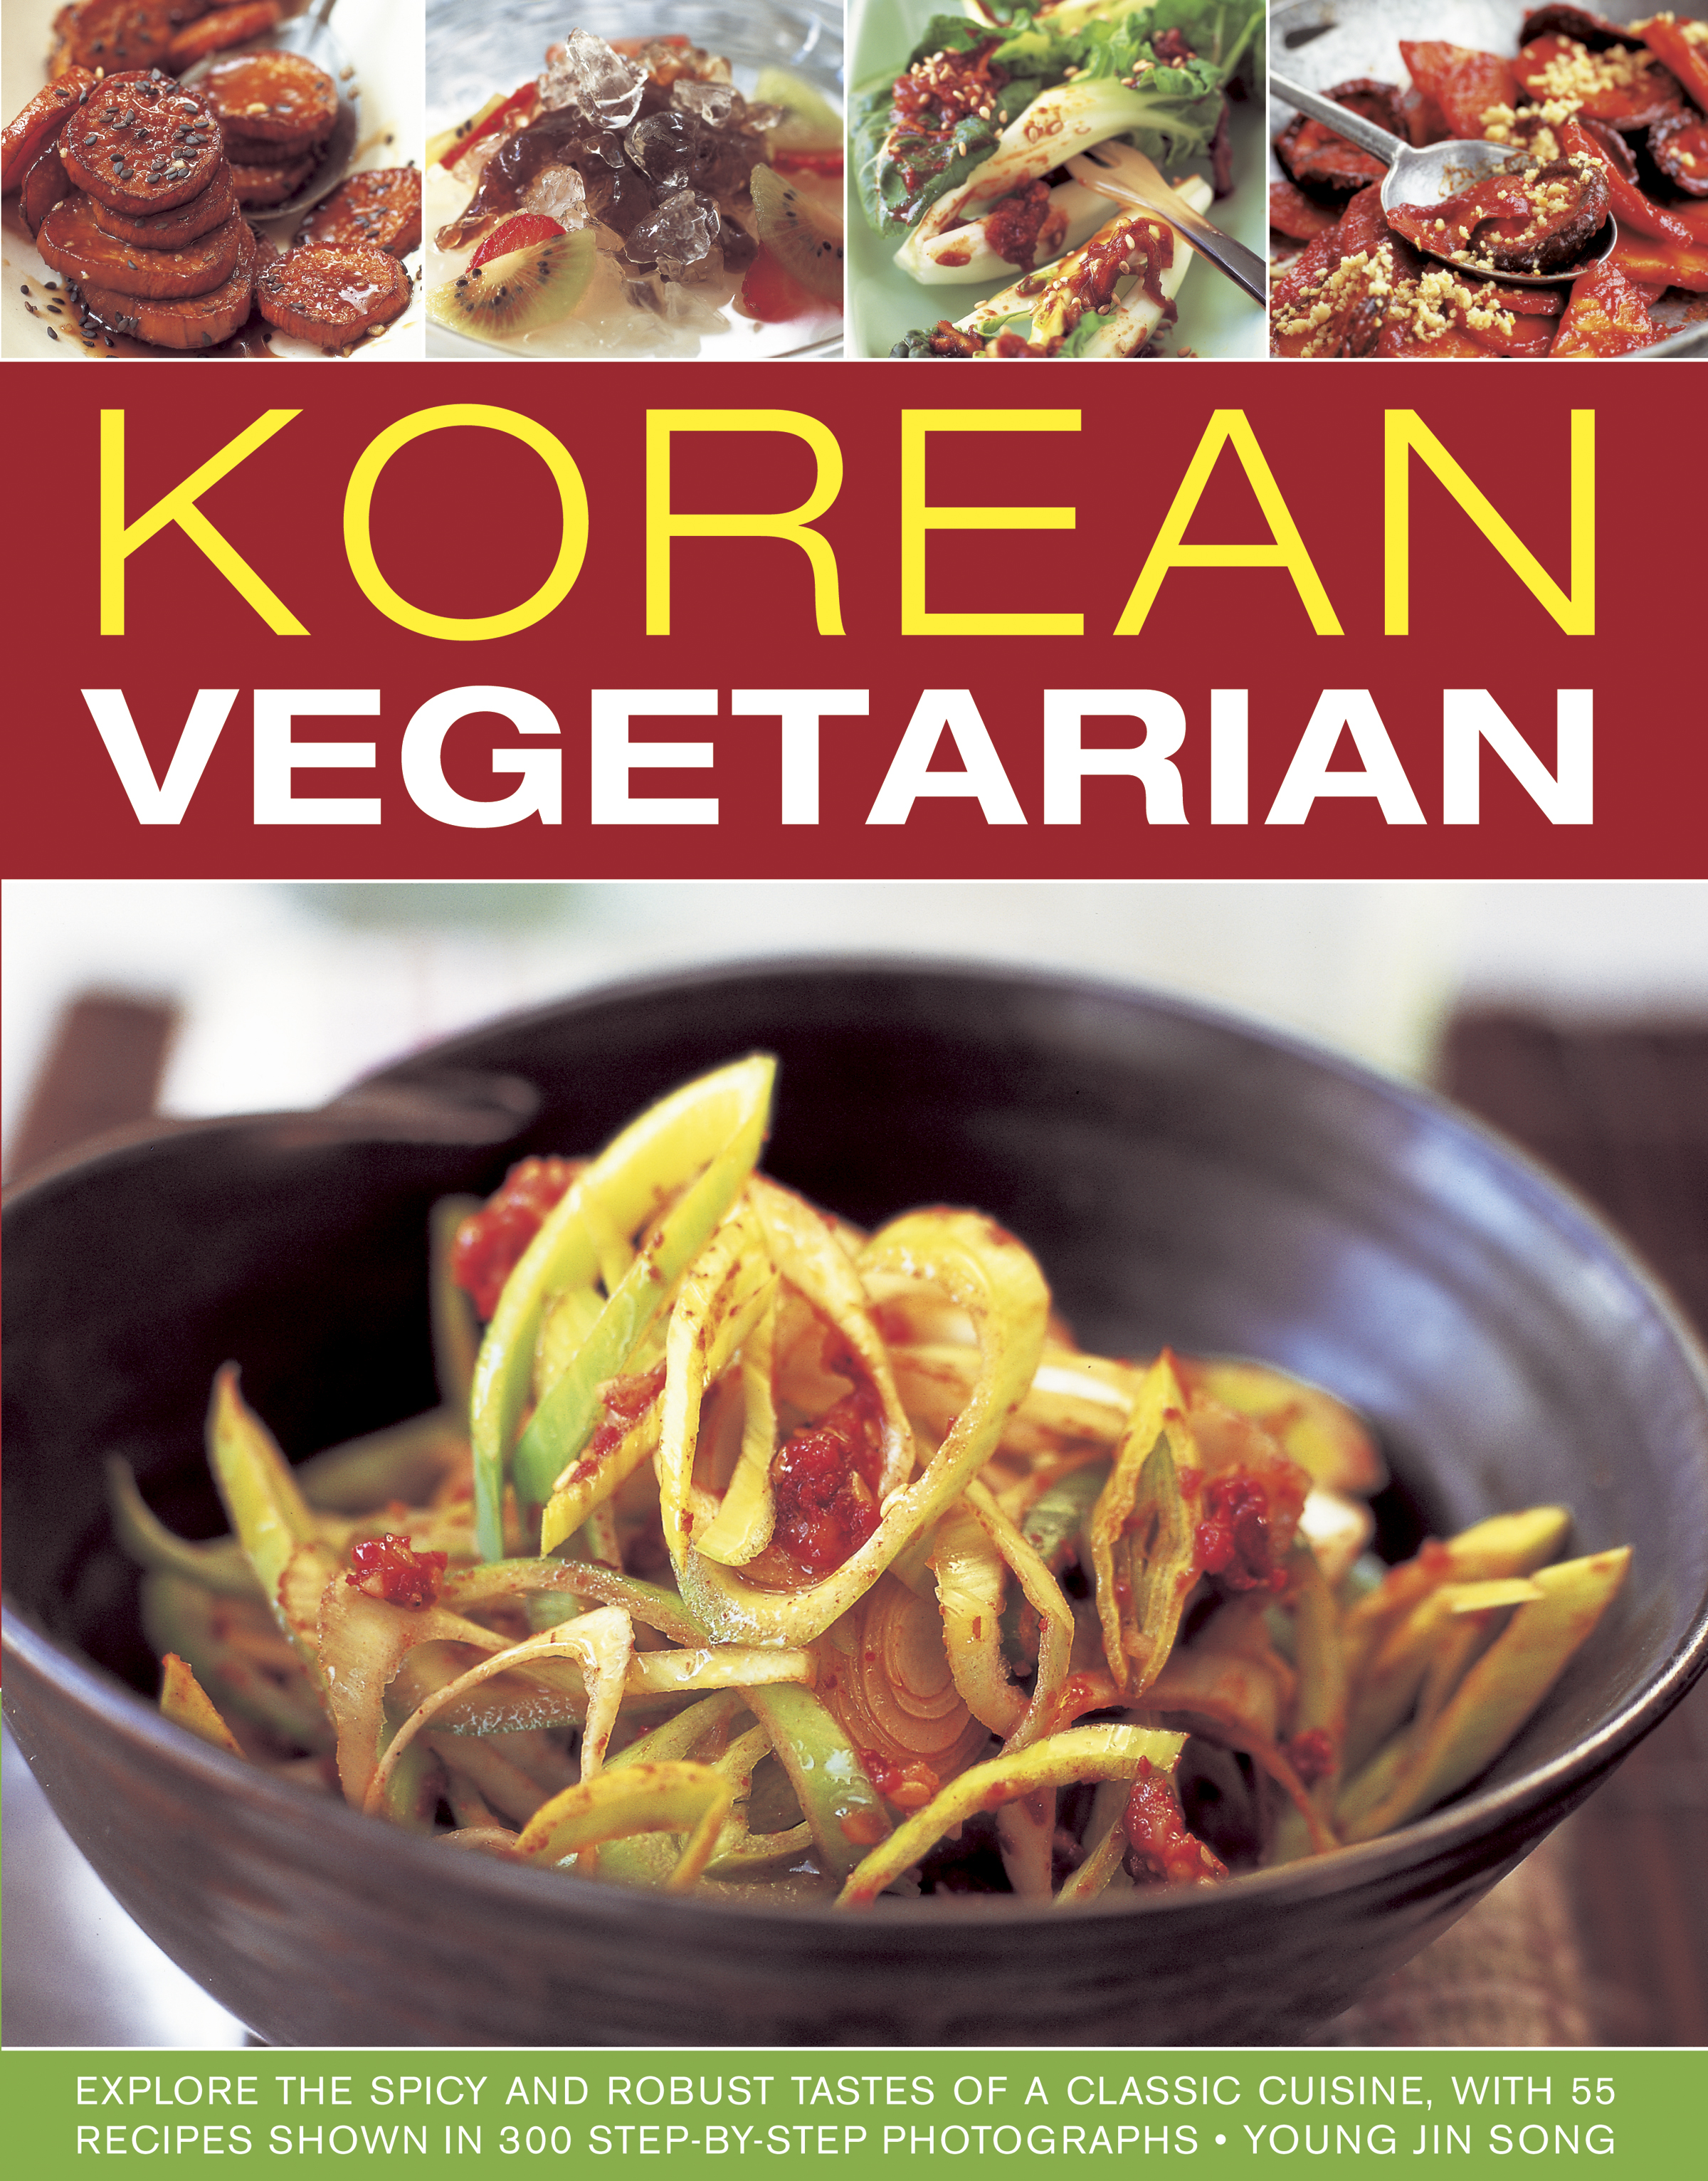 Korean Vegetarian Explore the Spicy and Robust Tastes of a Classic Cuisine,  with 50 Recipes Shown in 130 Step-by-step photographs